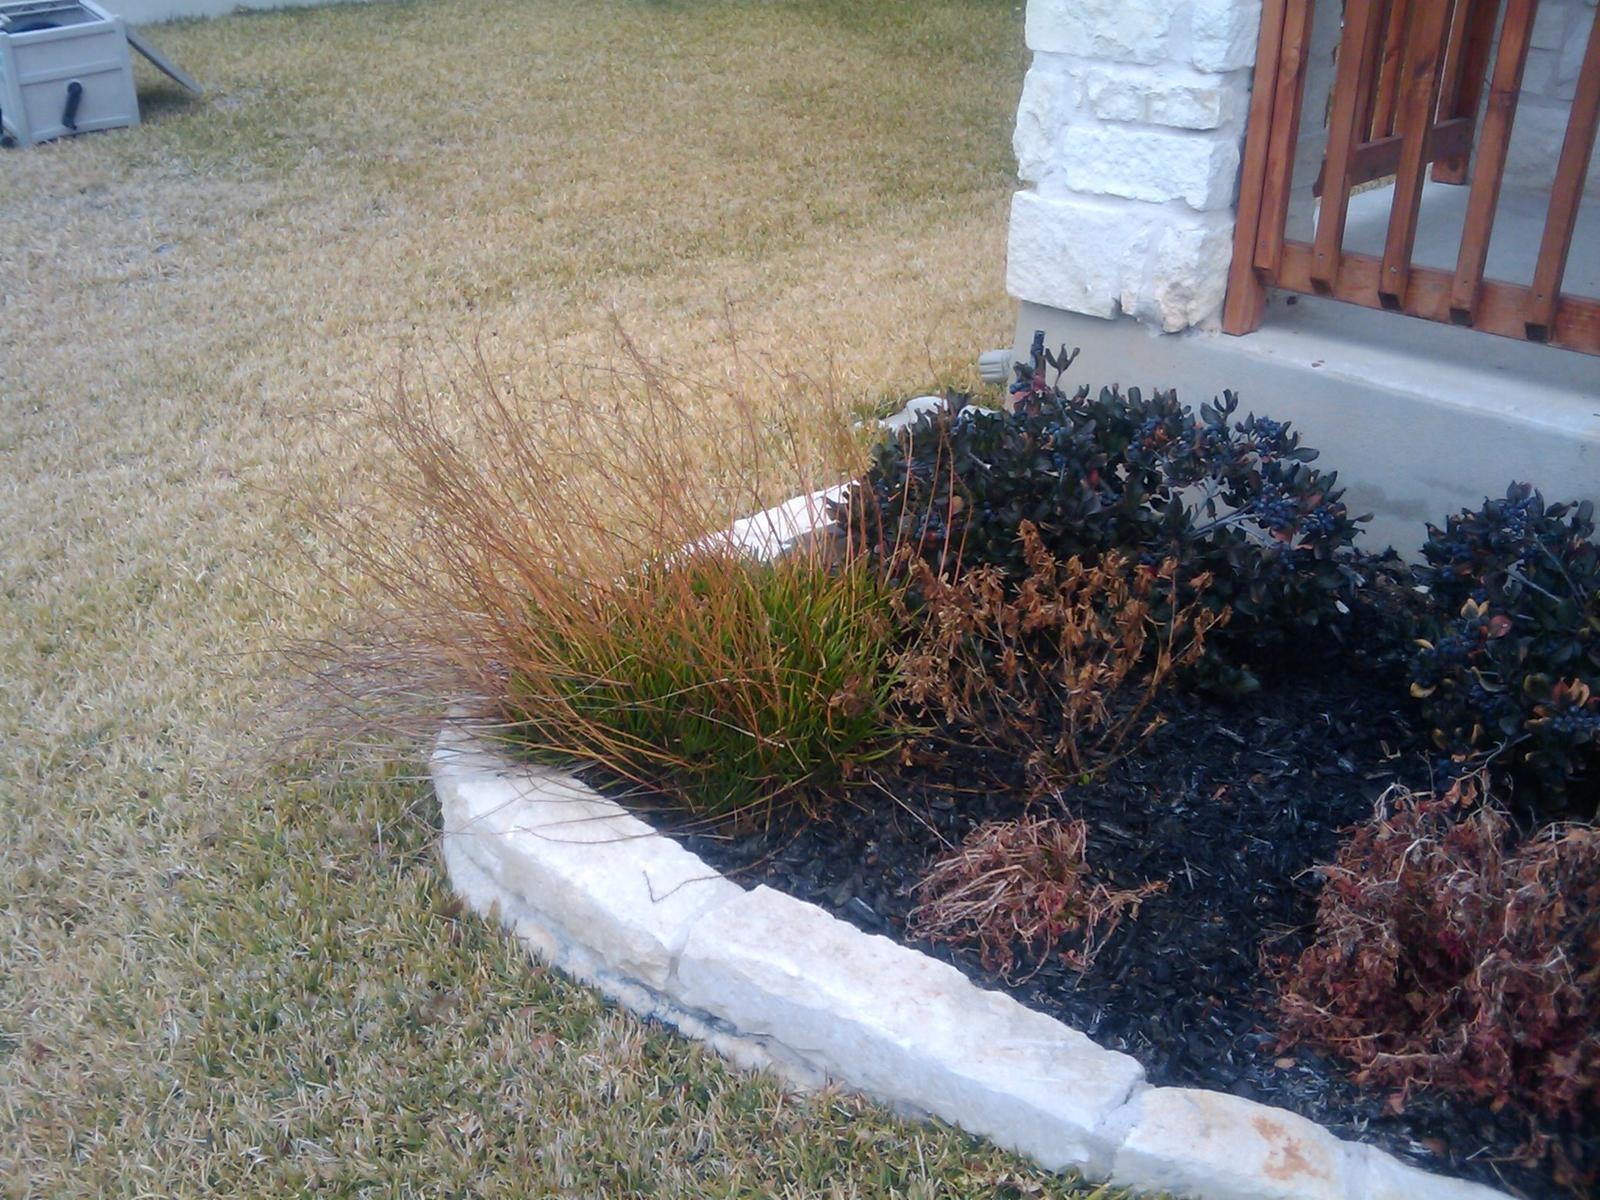 What do you do for dying evergreen bushes?